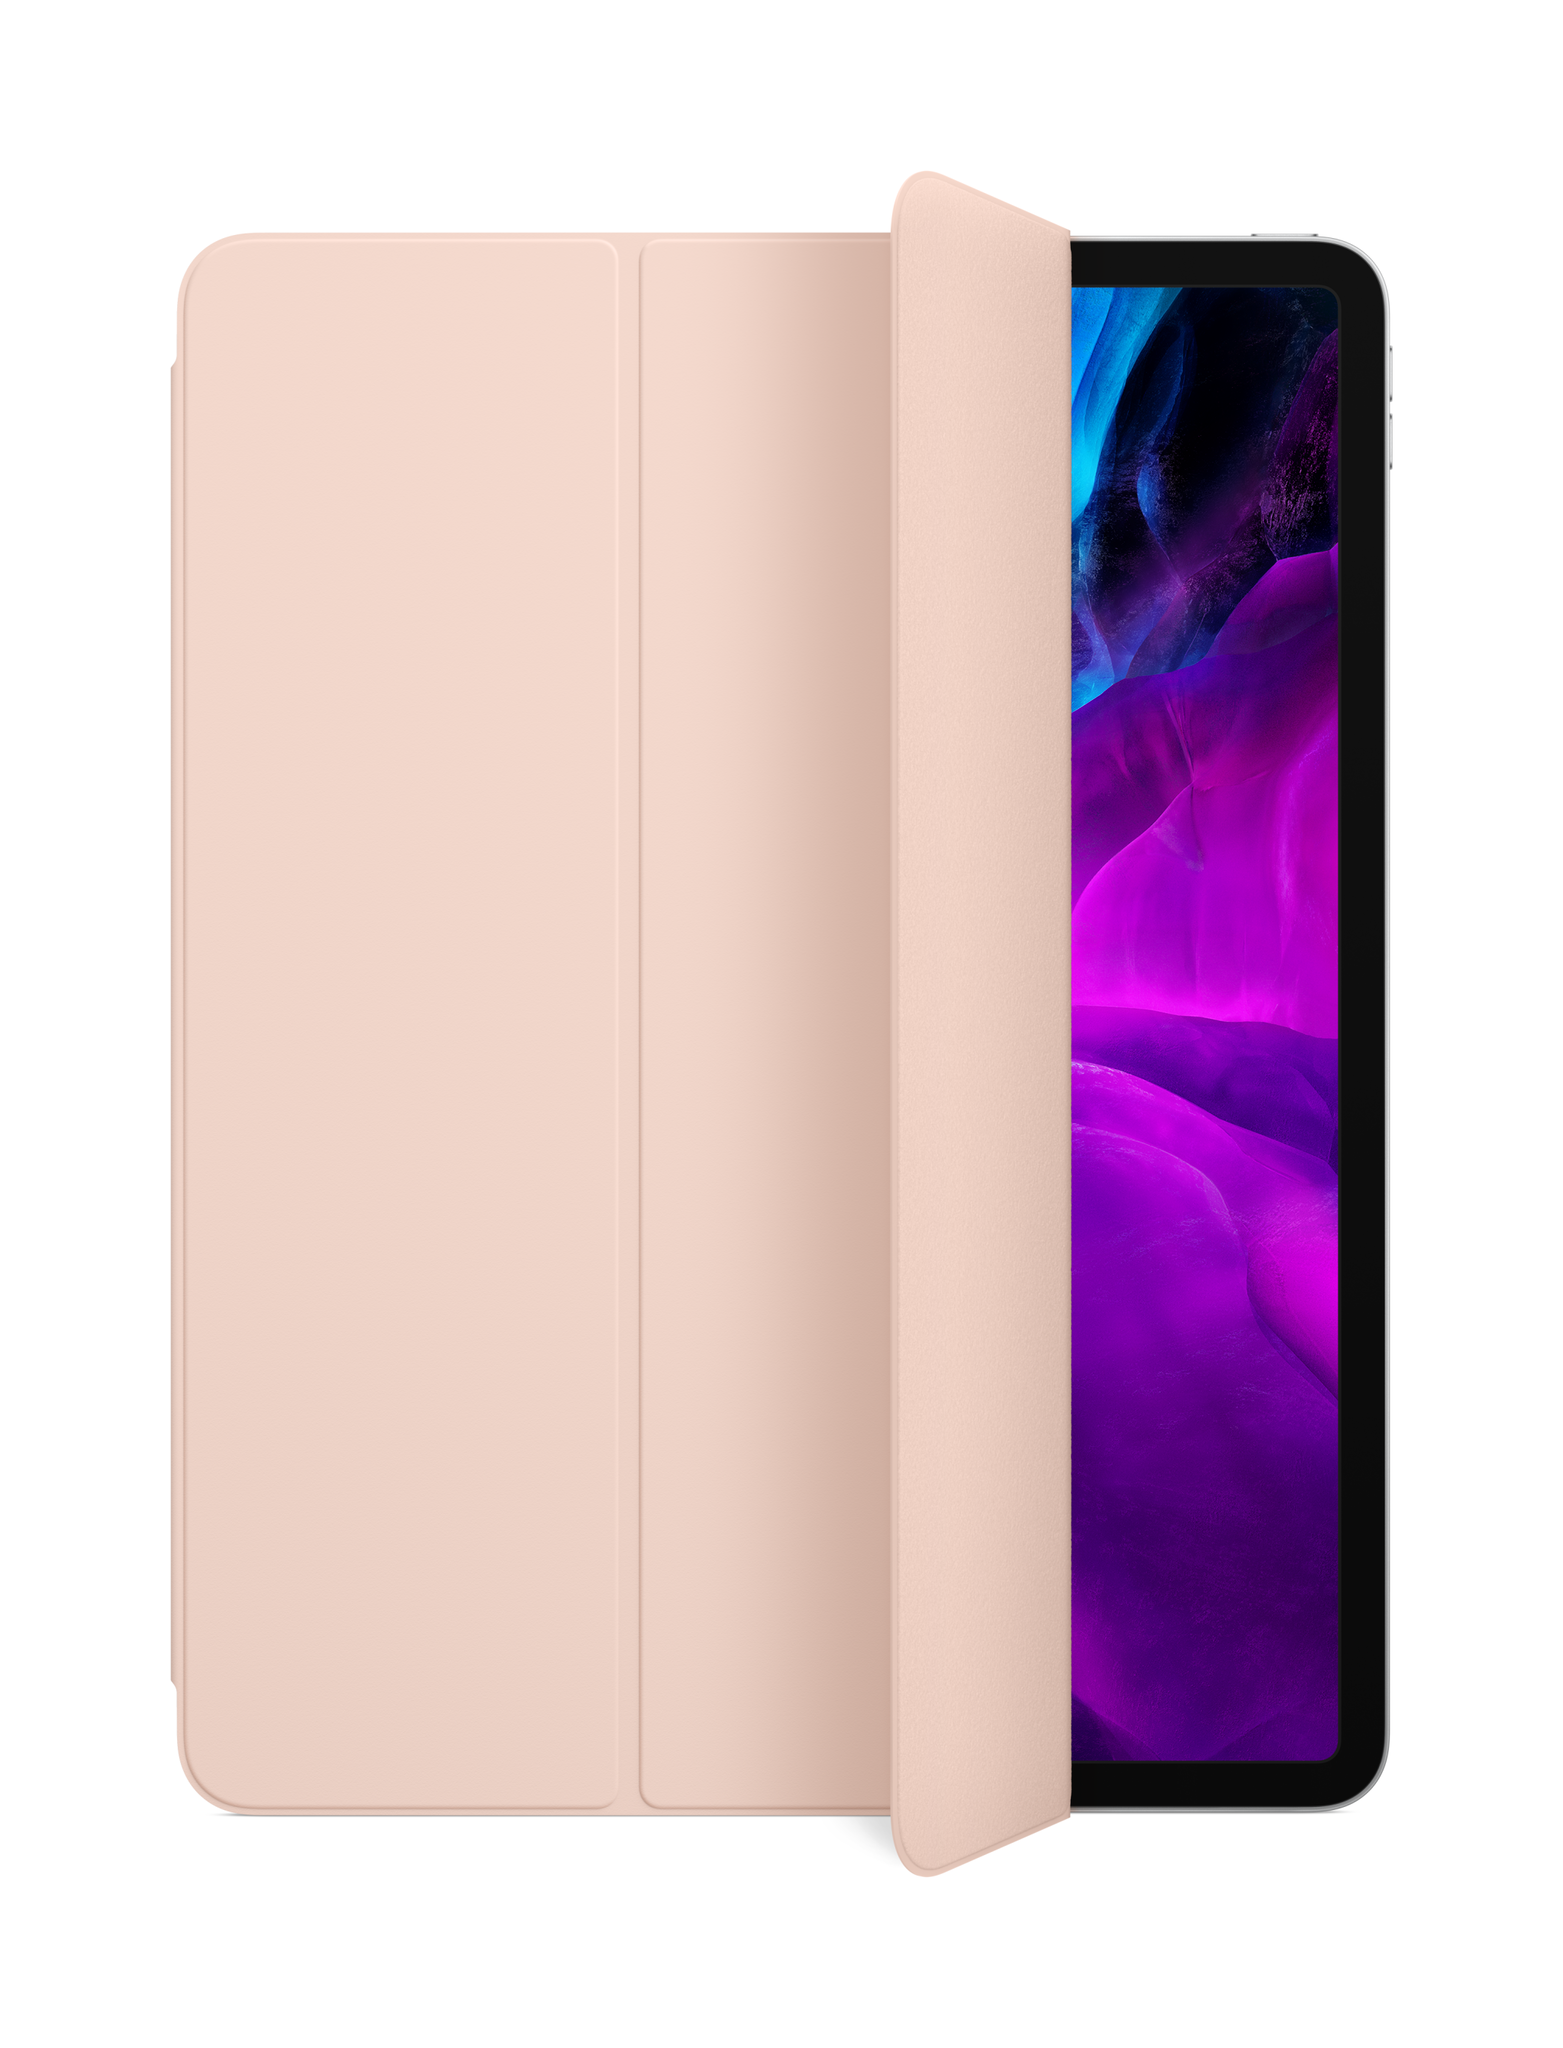 Smart Folio for 12.9-inch iPad Pro (4th generation) - Pink Sand